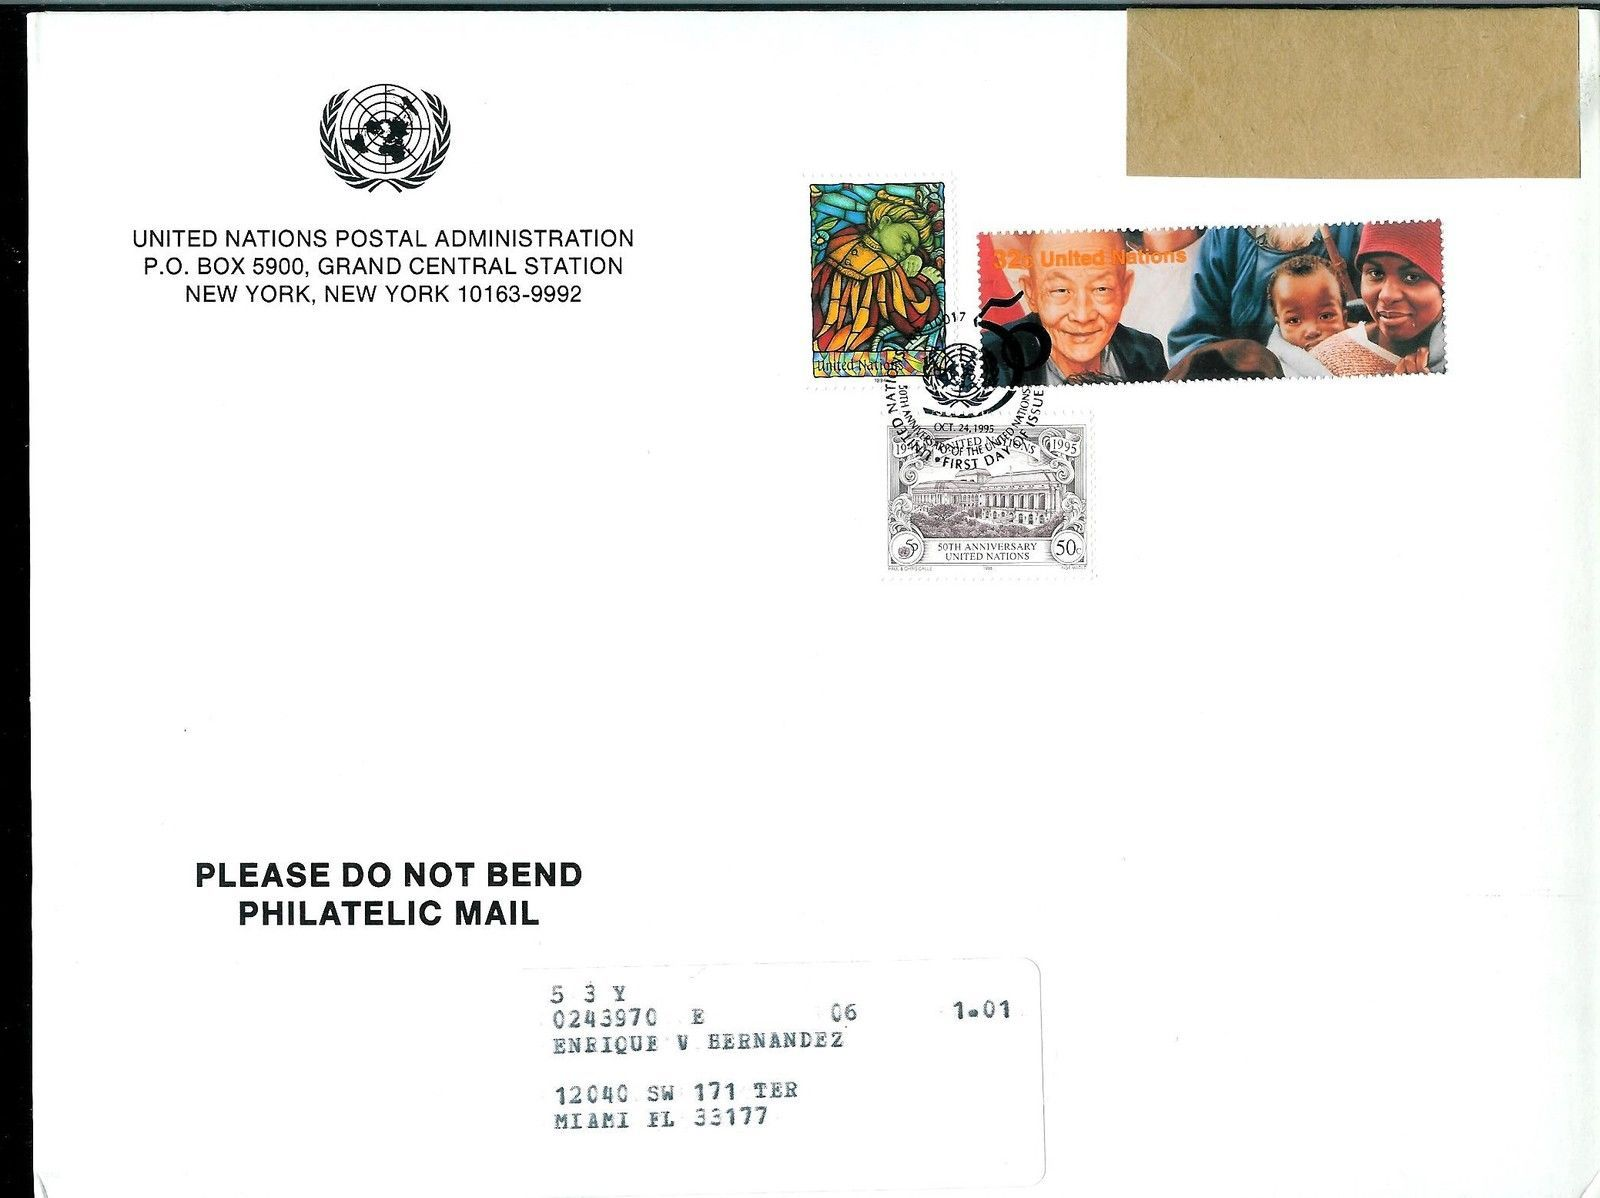 UNITED  NATIONS  * 50th ANNIVERSARY OF U. N.*  FIRST DAY COVER - LARGE CARDBOARD